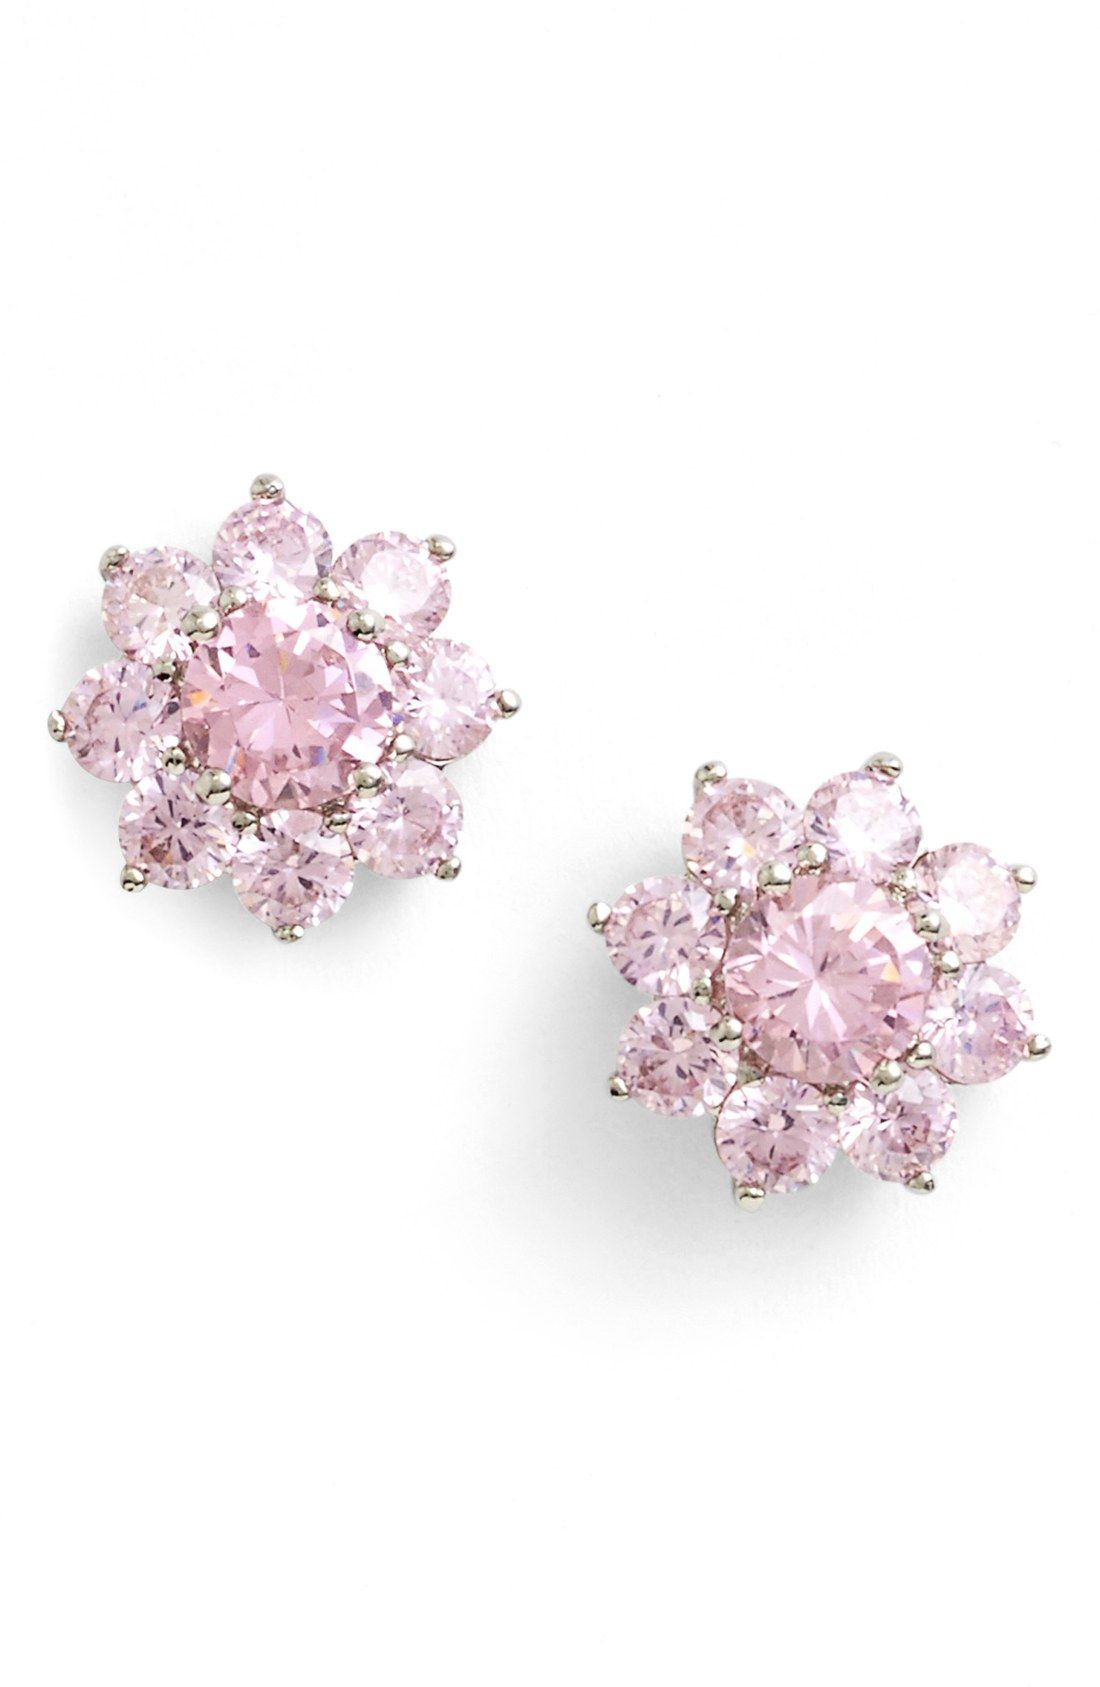 These Sparkly Pale Pink Flower Stud Earrings Are Perfect For Spring Wearing Them With Everything This Season